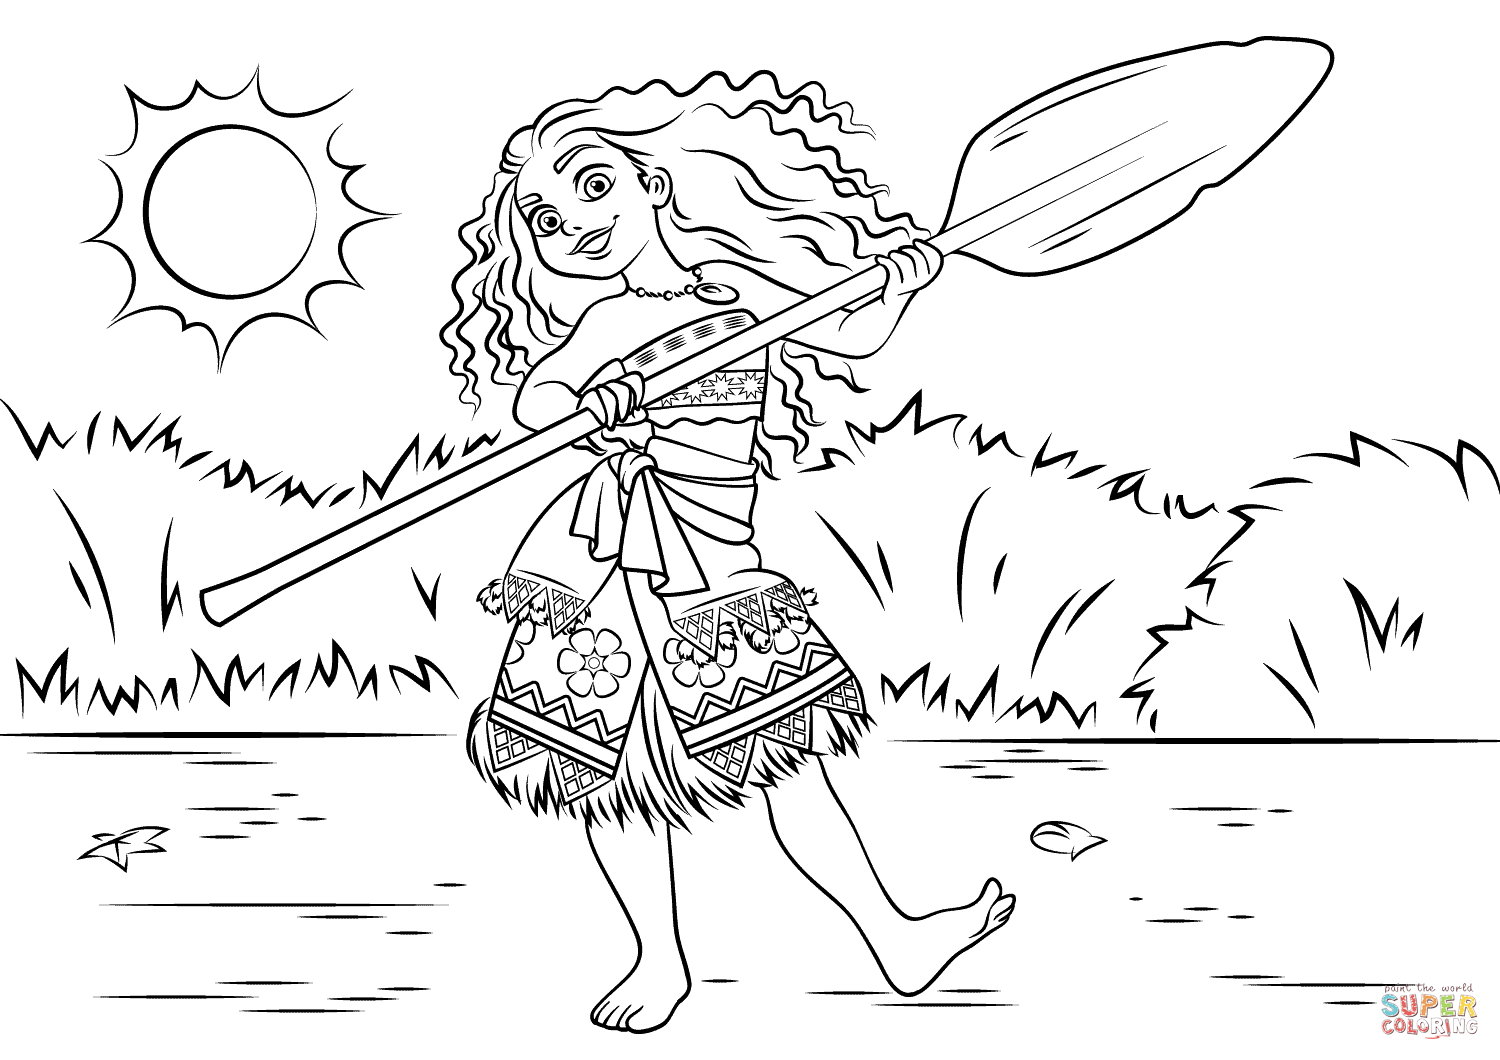 graphic about Printable Coloring Pages Moana named Moana Printable Coloring Webpages 15 Amazing Absolutely free Coloring Webpages